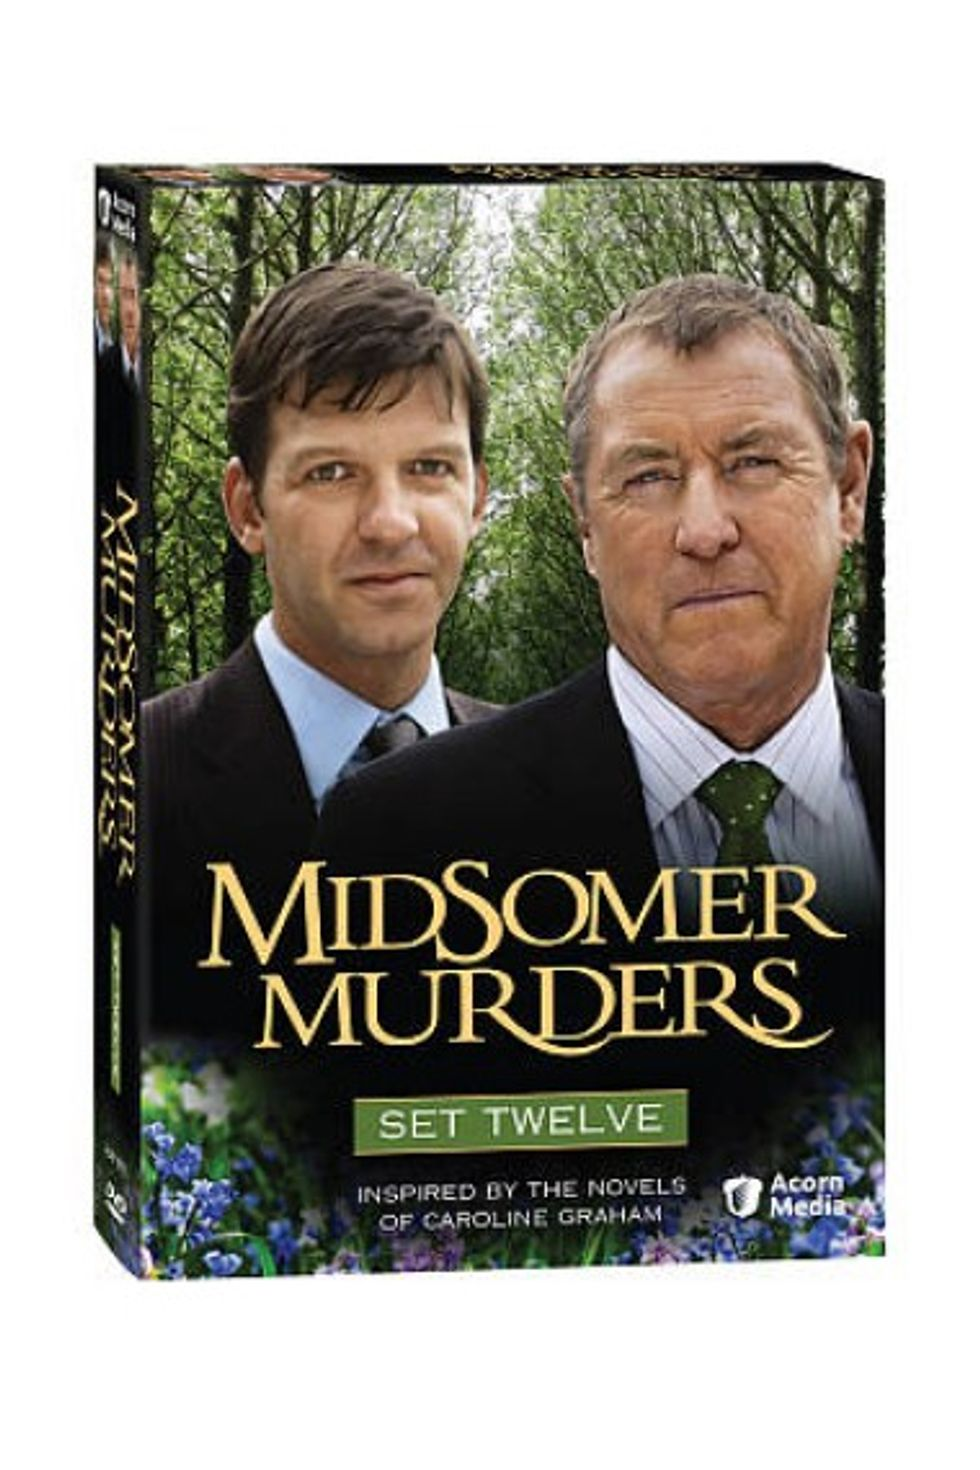 Mad About the New Midsomer Murders DVD!